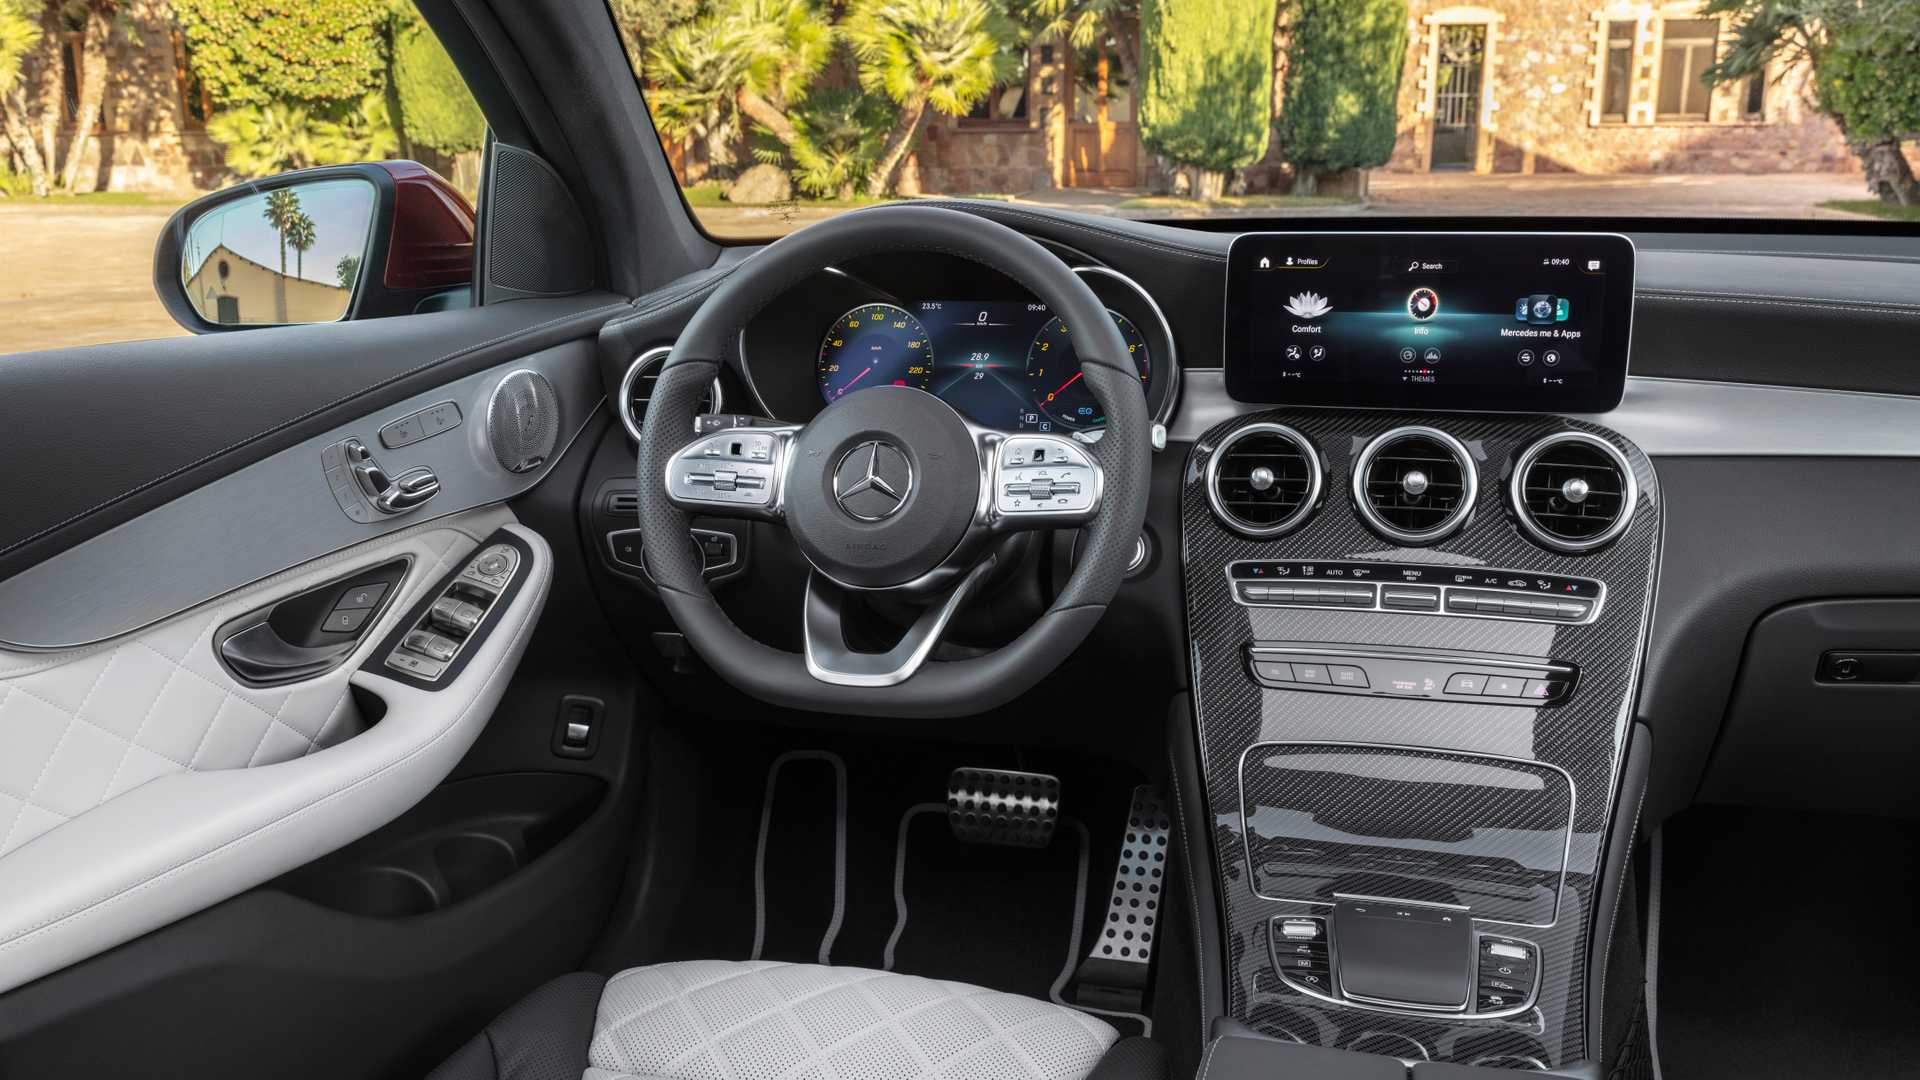 Mercedes Glc Coupe 2019 Interior 01